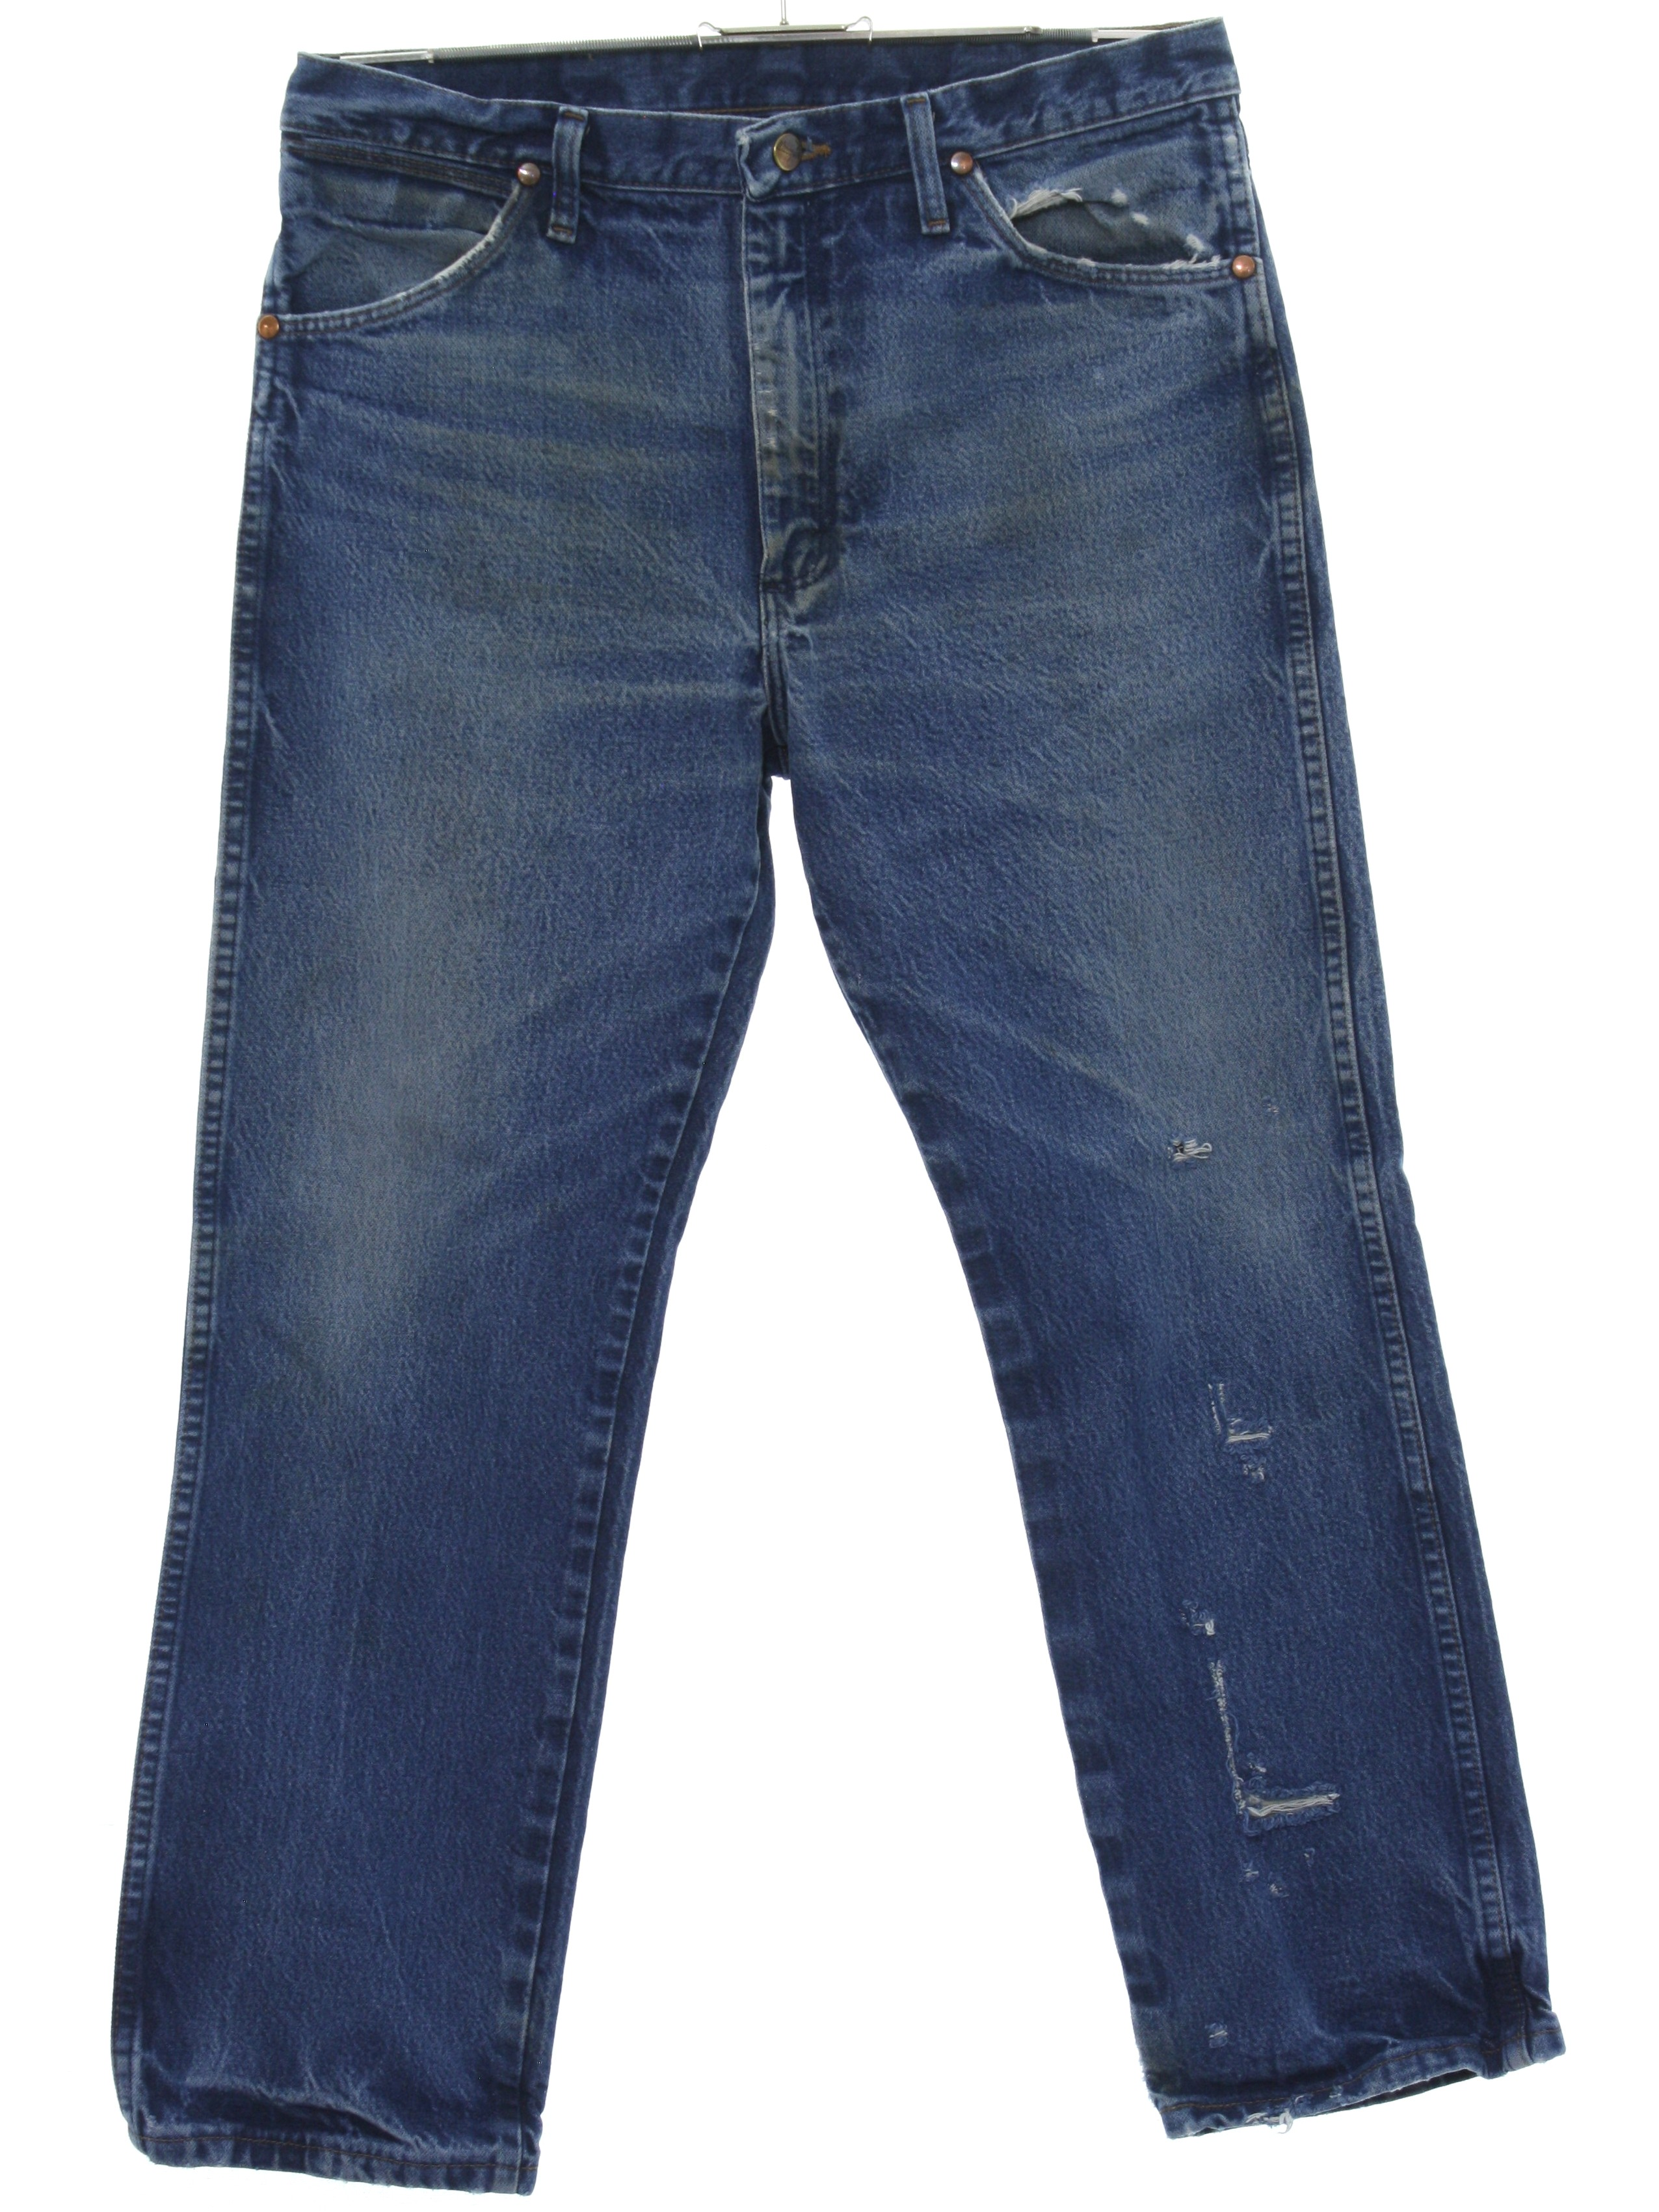 7454a4417a 1990's Wrangler Mens Grunge Denim Jeans Pants $28.00 In stock. Item No.  347241